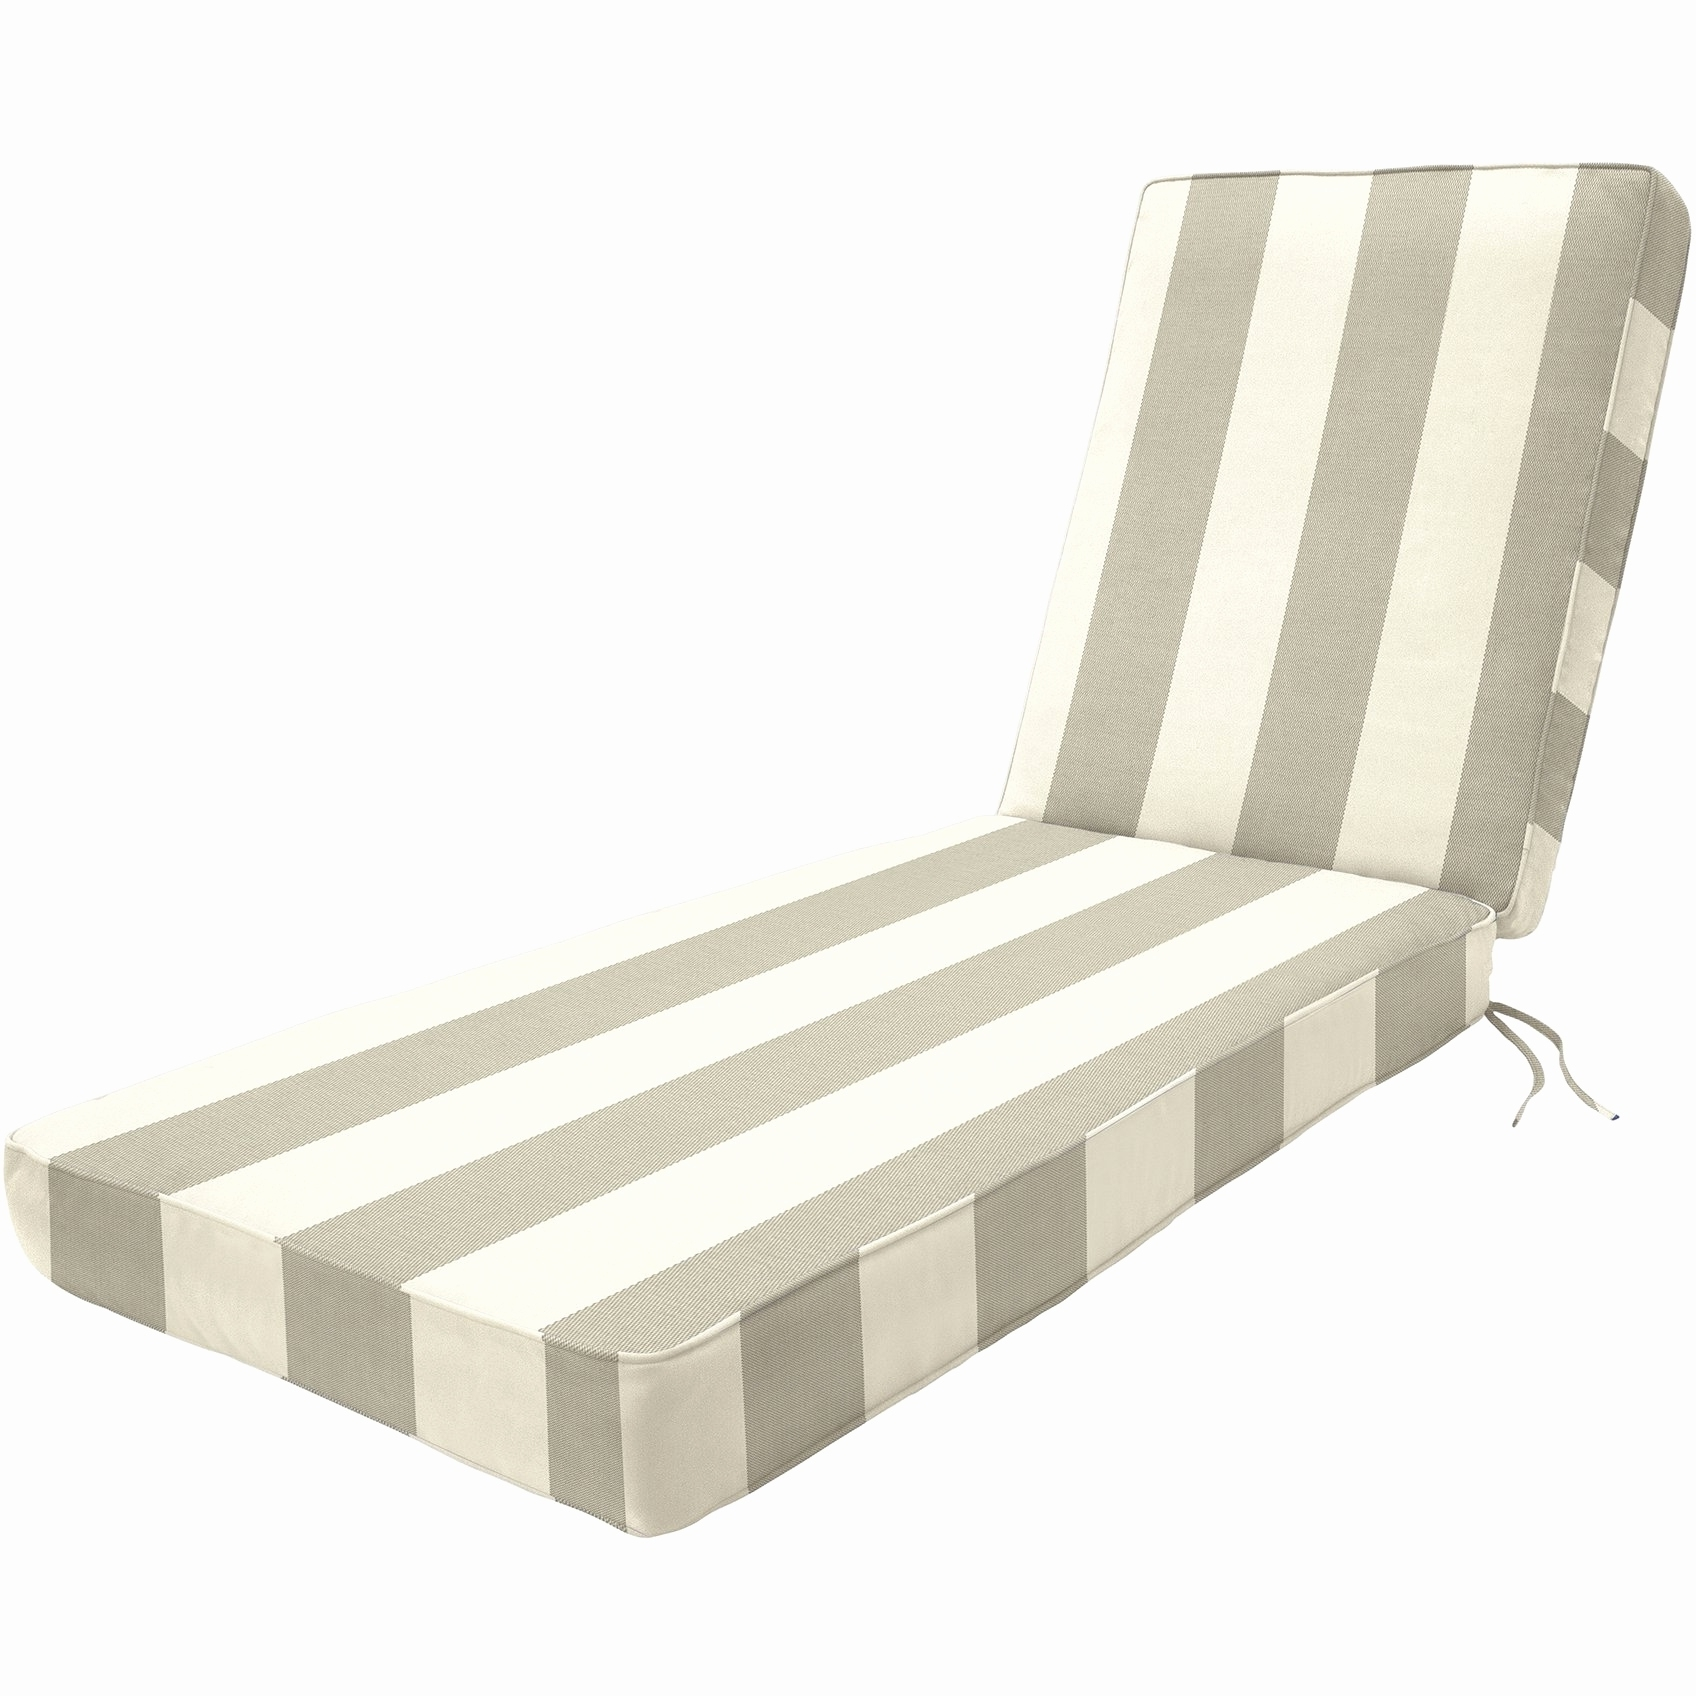 Popular Sunbrella Chaise Lounge Cushions For 30 Unique Cheap Outdoor Lounge Chairs Pictures (30 Photos) (View 6 of 15)